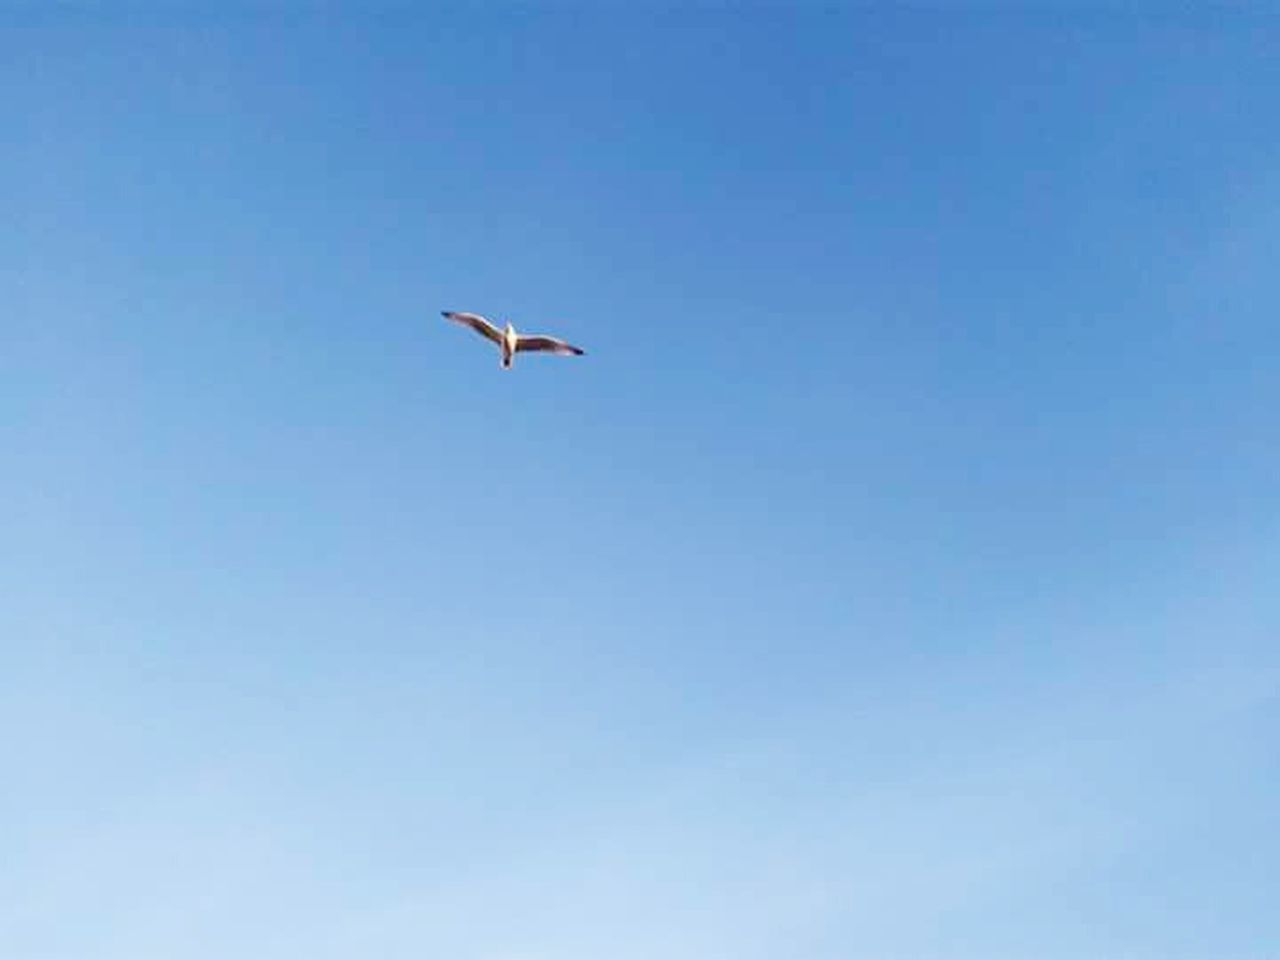 bird, animals in the wild, one animal, animal themes, flying, animal wildlife, low angle view, mid-air, nature, spread wings, day, clear sky, blue, no people, outdoors, beauty in nature, sky